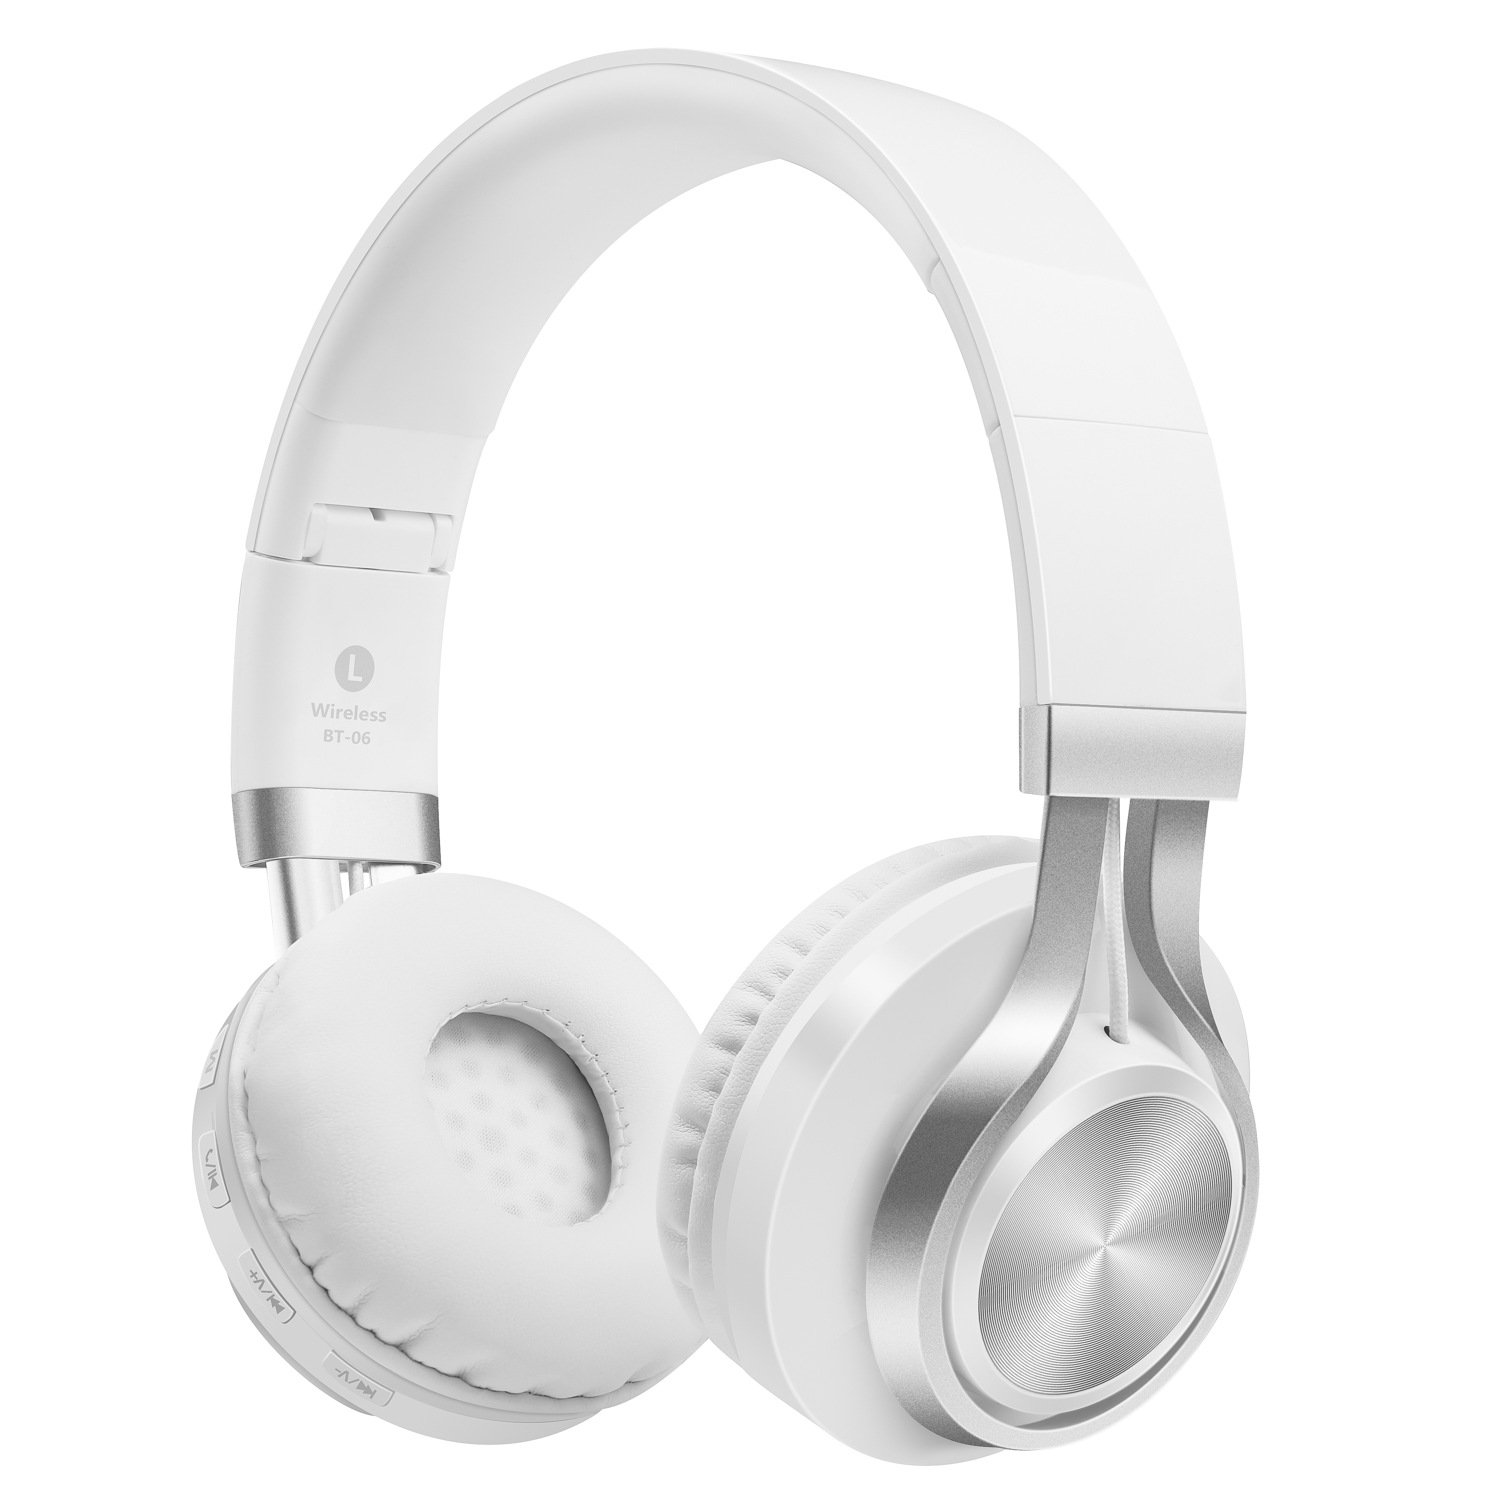 SNOHE Over Ear Headphone,Stereo Wireless Headset with Memory-Protein Earmuffs, Lightweight & Foldable Wired/Wireless Bluetooth Headphones for Cell Phone/TV/PC,White